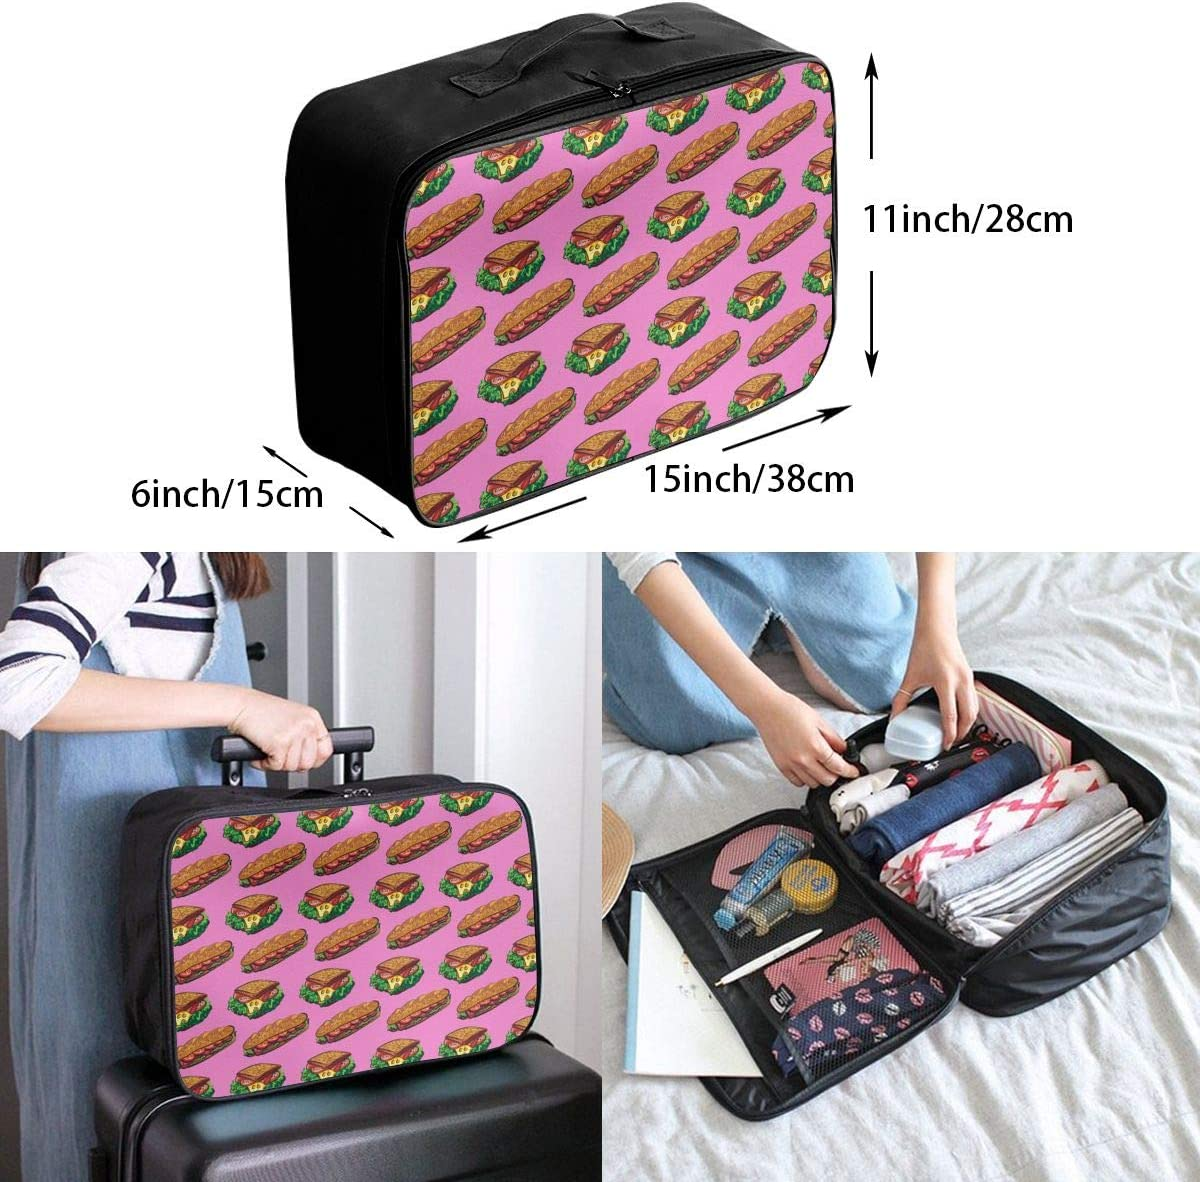 YueLJB Sandwich Pattern Lightweight Large Capacity Portable Luggage Bag Travel Duffel Bag Storage Carry Luggage Duffle Tote Bag